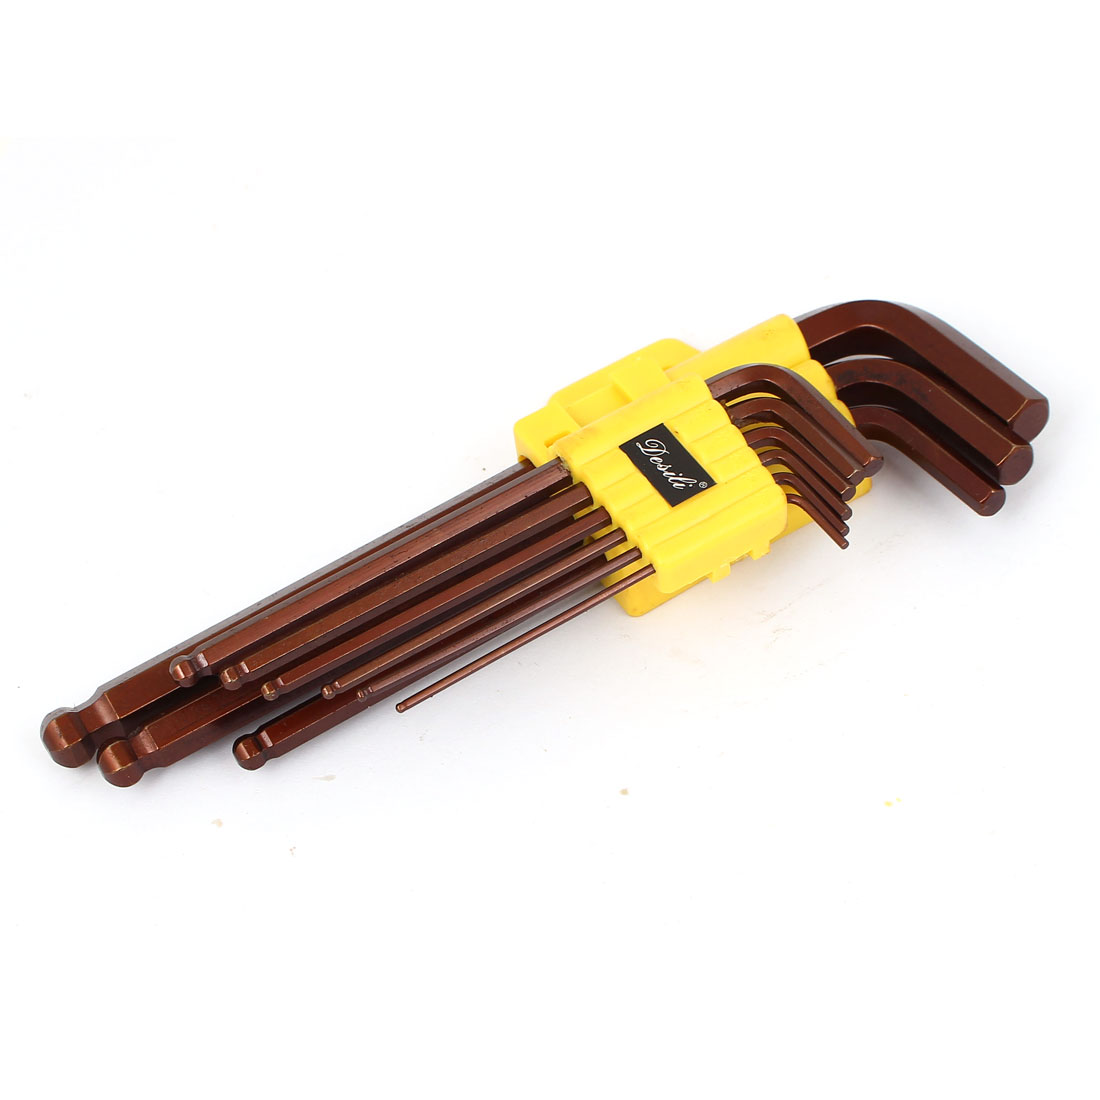 1.5mm-10mm Ball Driver L Design S2 Hex Wrench Key Set Brown 9 in 1